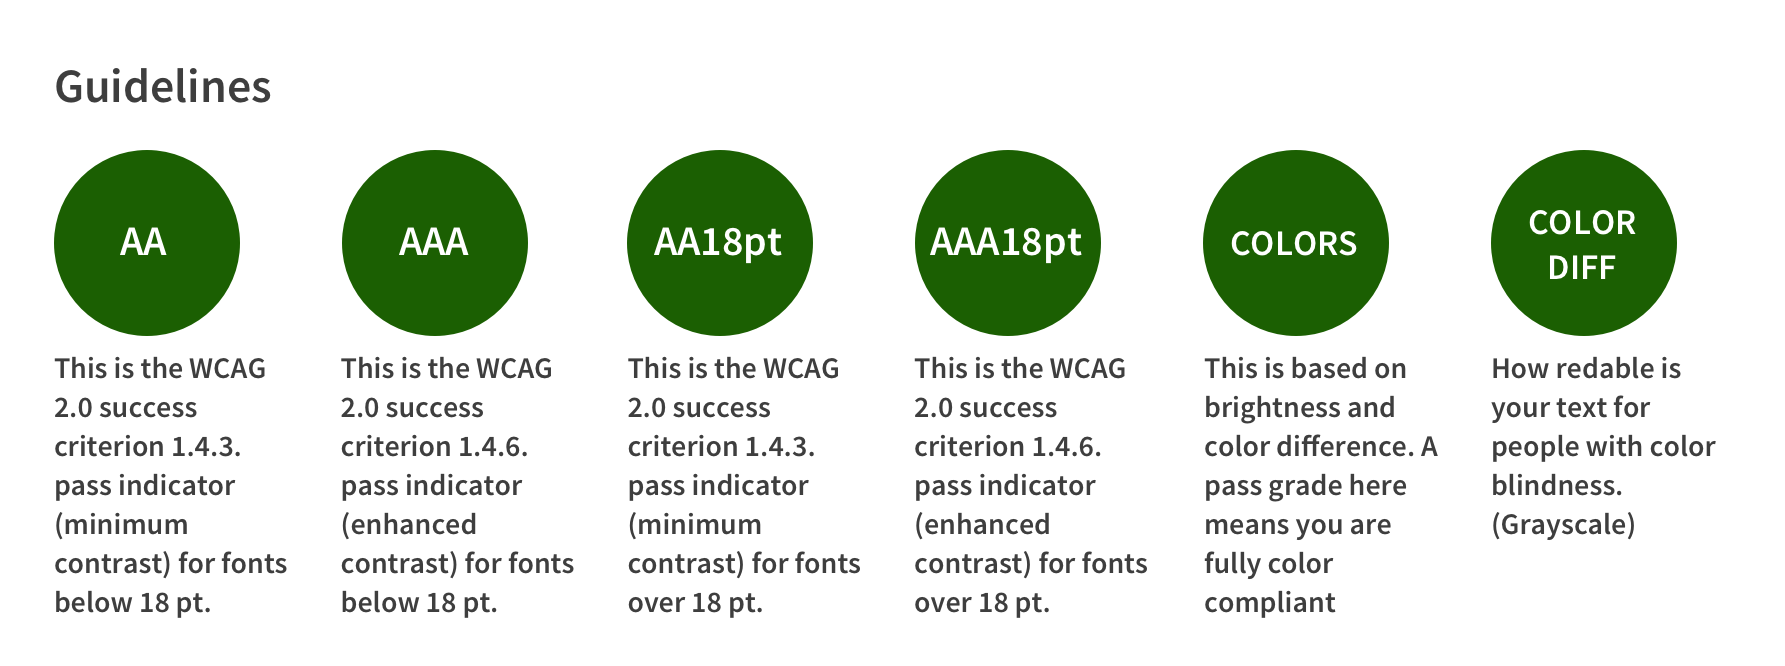 Contrast guidelines based on WCAG standards